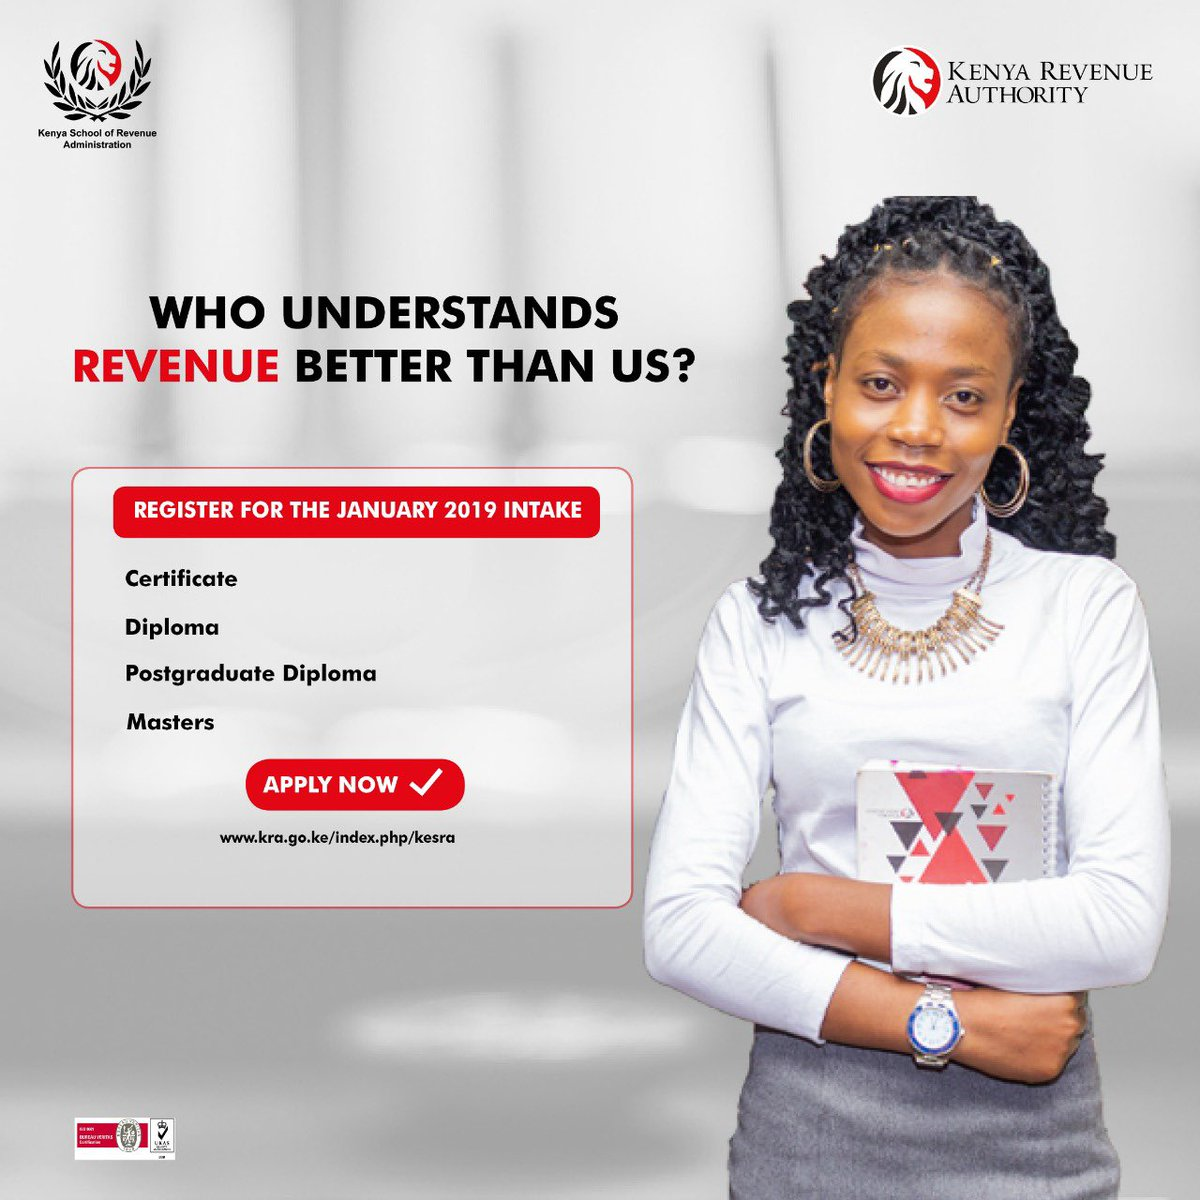 Kenya School Of Revenue Administration On Twitter Advance Your Career In Tax And Customs Administration As Well As Freight Forwarding With Our Academic Programmes Campuses Nairobi Mombasa E Campus Apply For The January